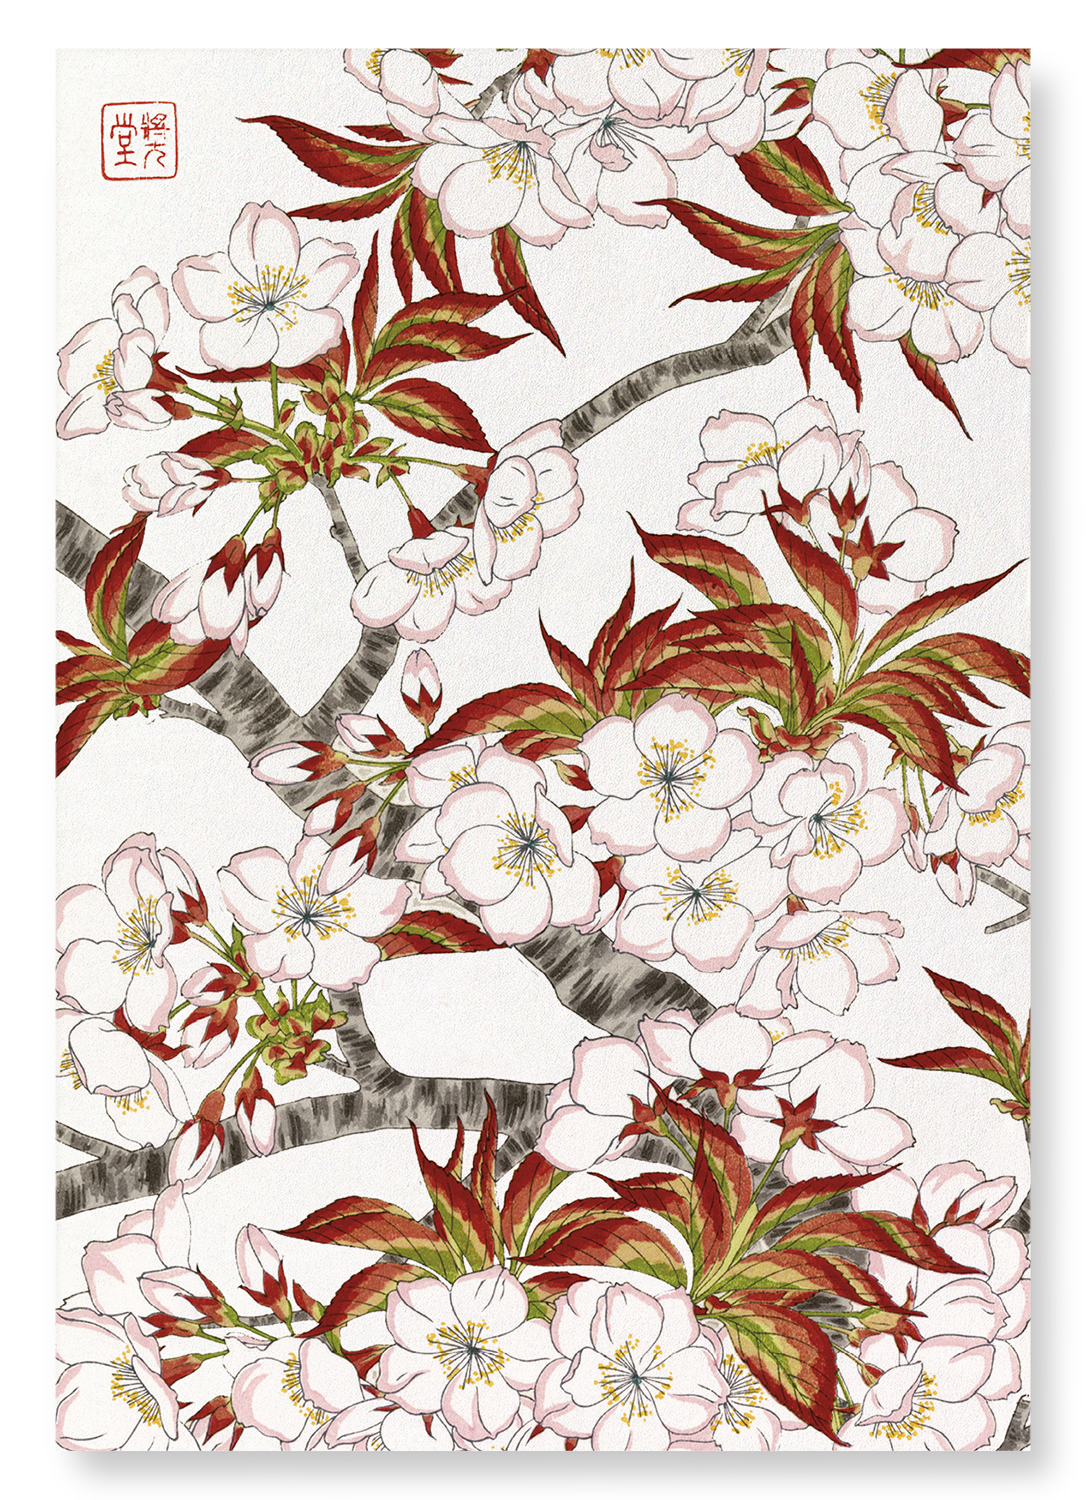 Cherry blossom flowers: 2xPrints